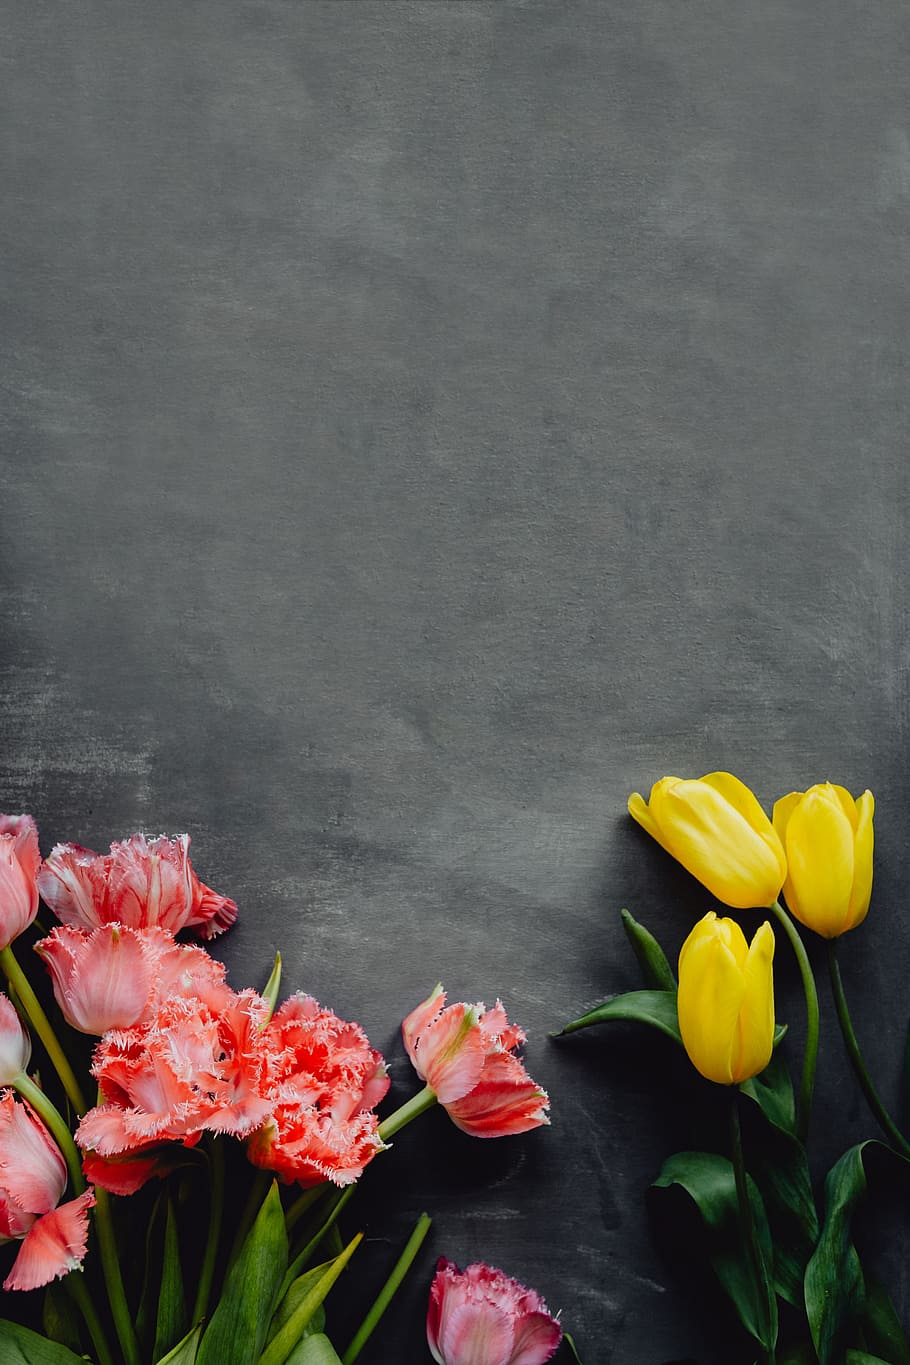 Hd Wallpaper Colorful Flowers On Grey Background With Copy Space Bloom Floral Wallpaper Flare